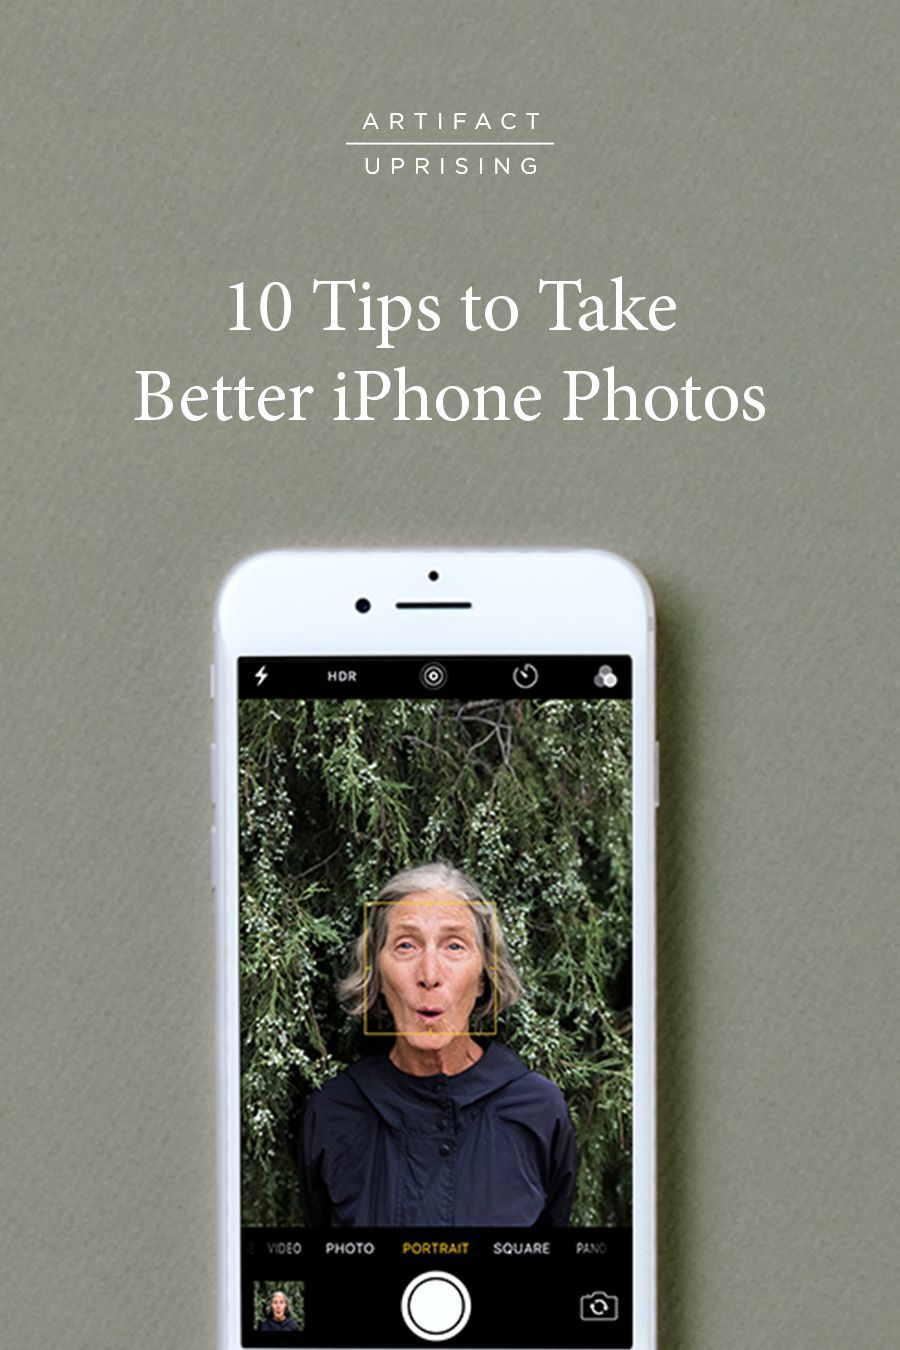 Looking To Take Better Phone Photos? Get 10 Tips At